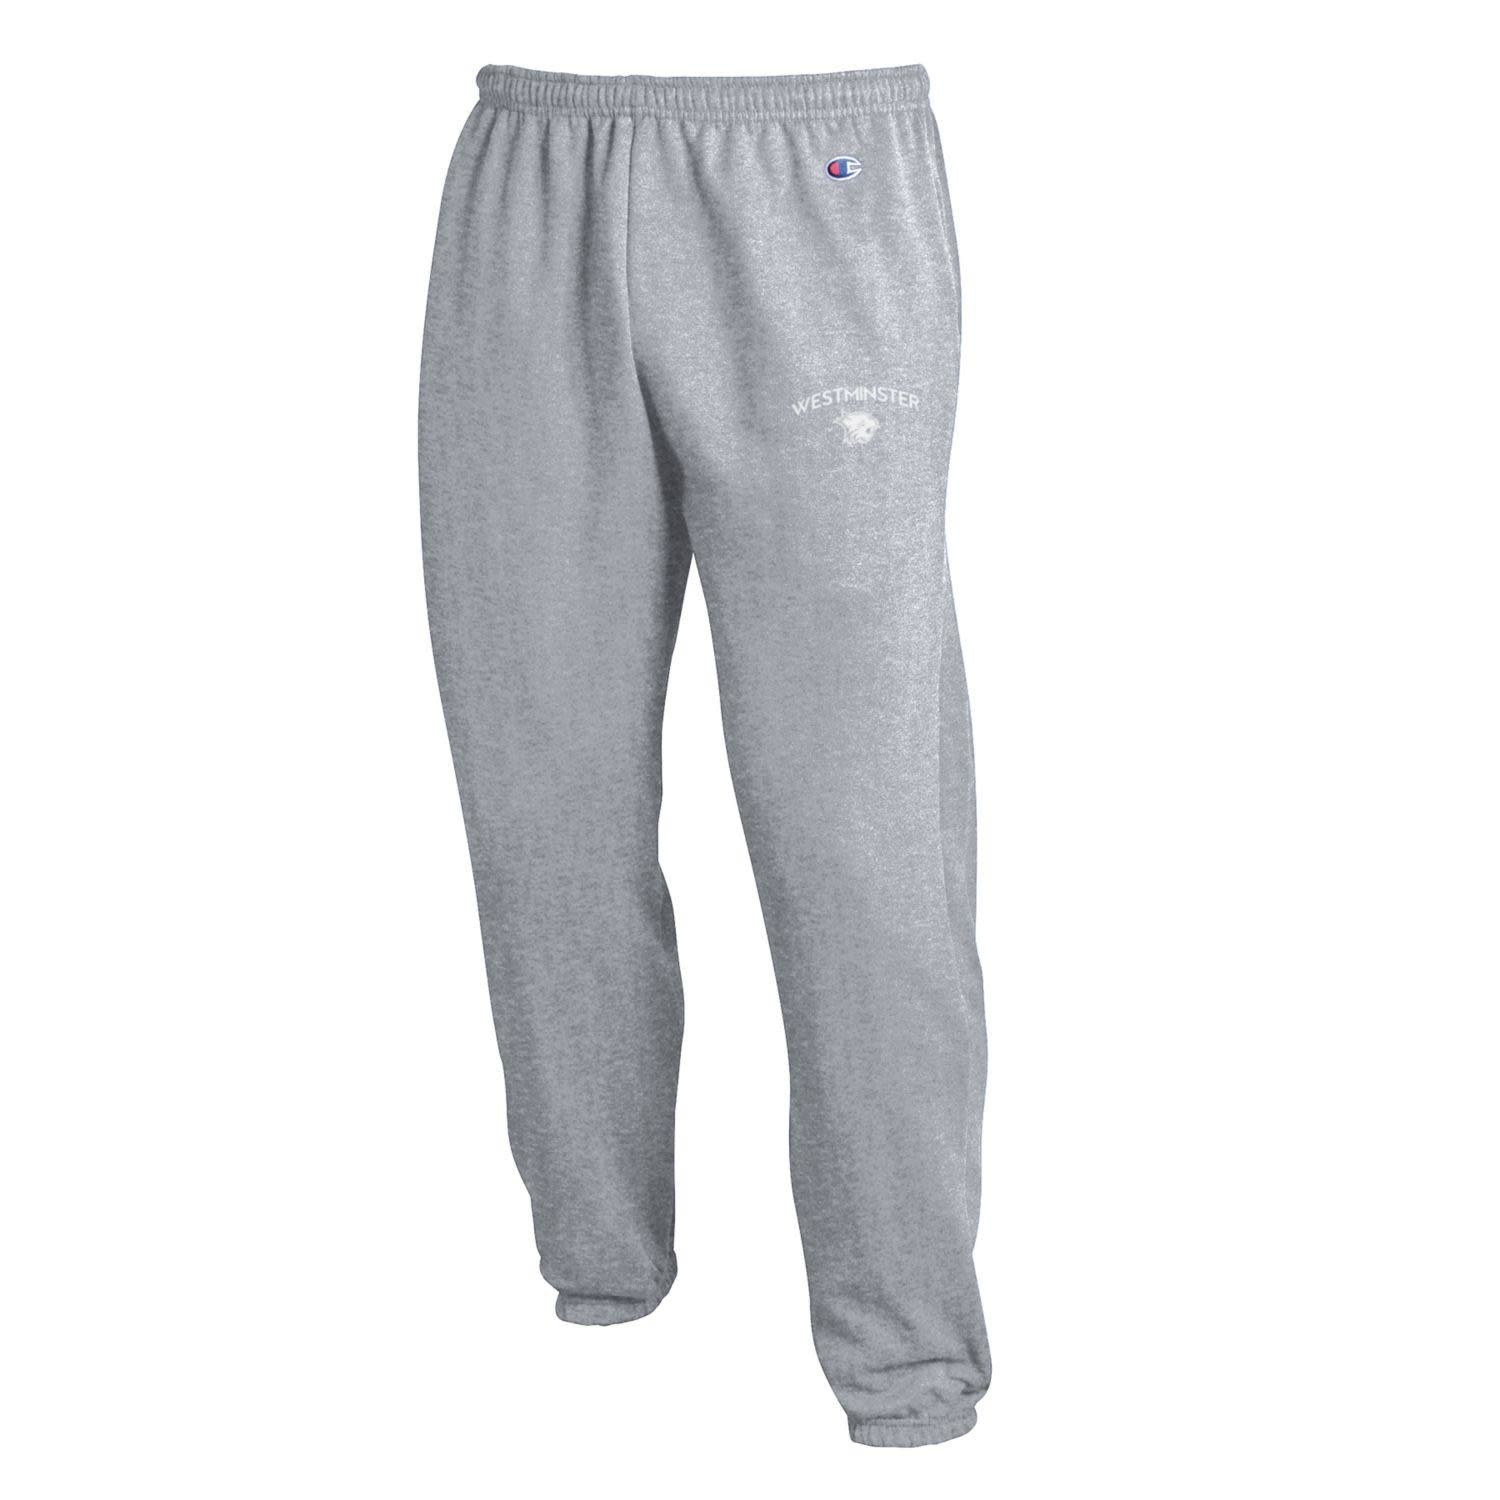 Champion Sweatpants: Champion  Light Gray Elastic